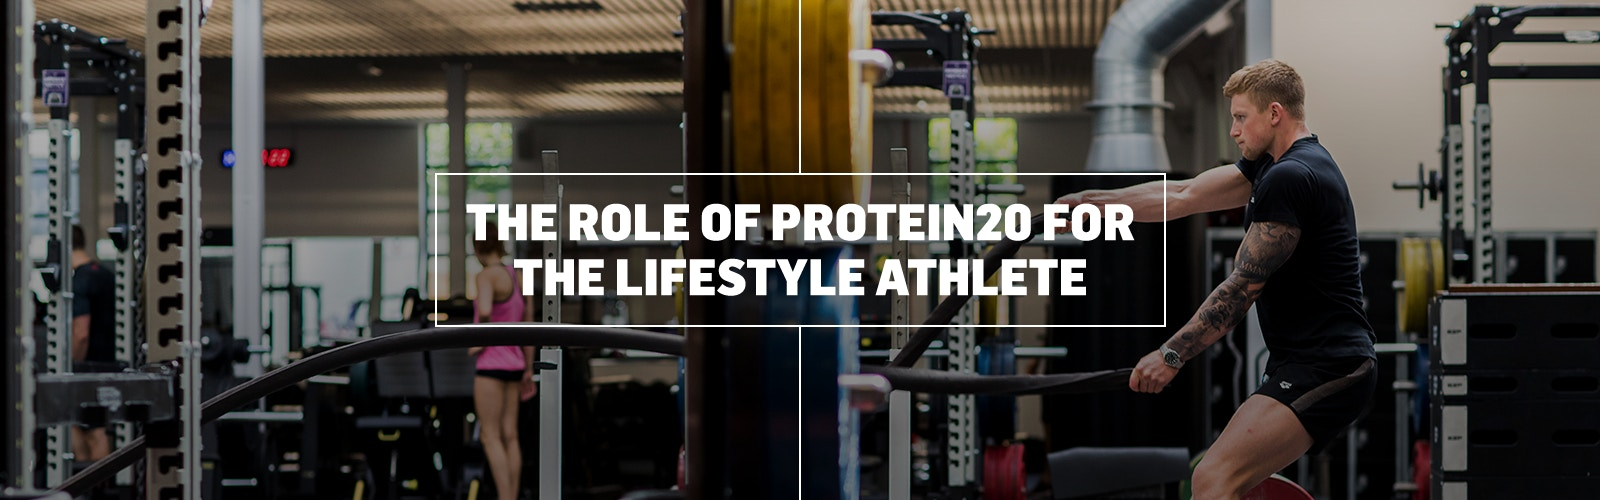 SIS - The role of protein for the lifestyle athlete